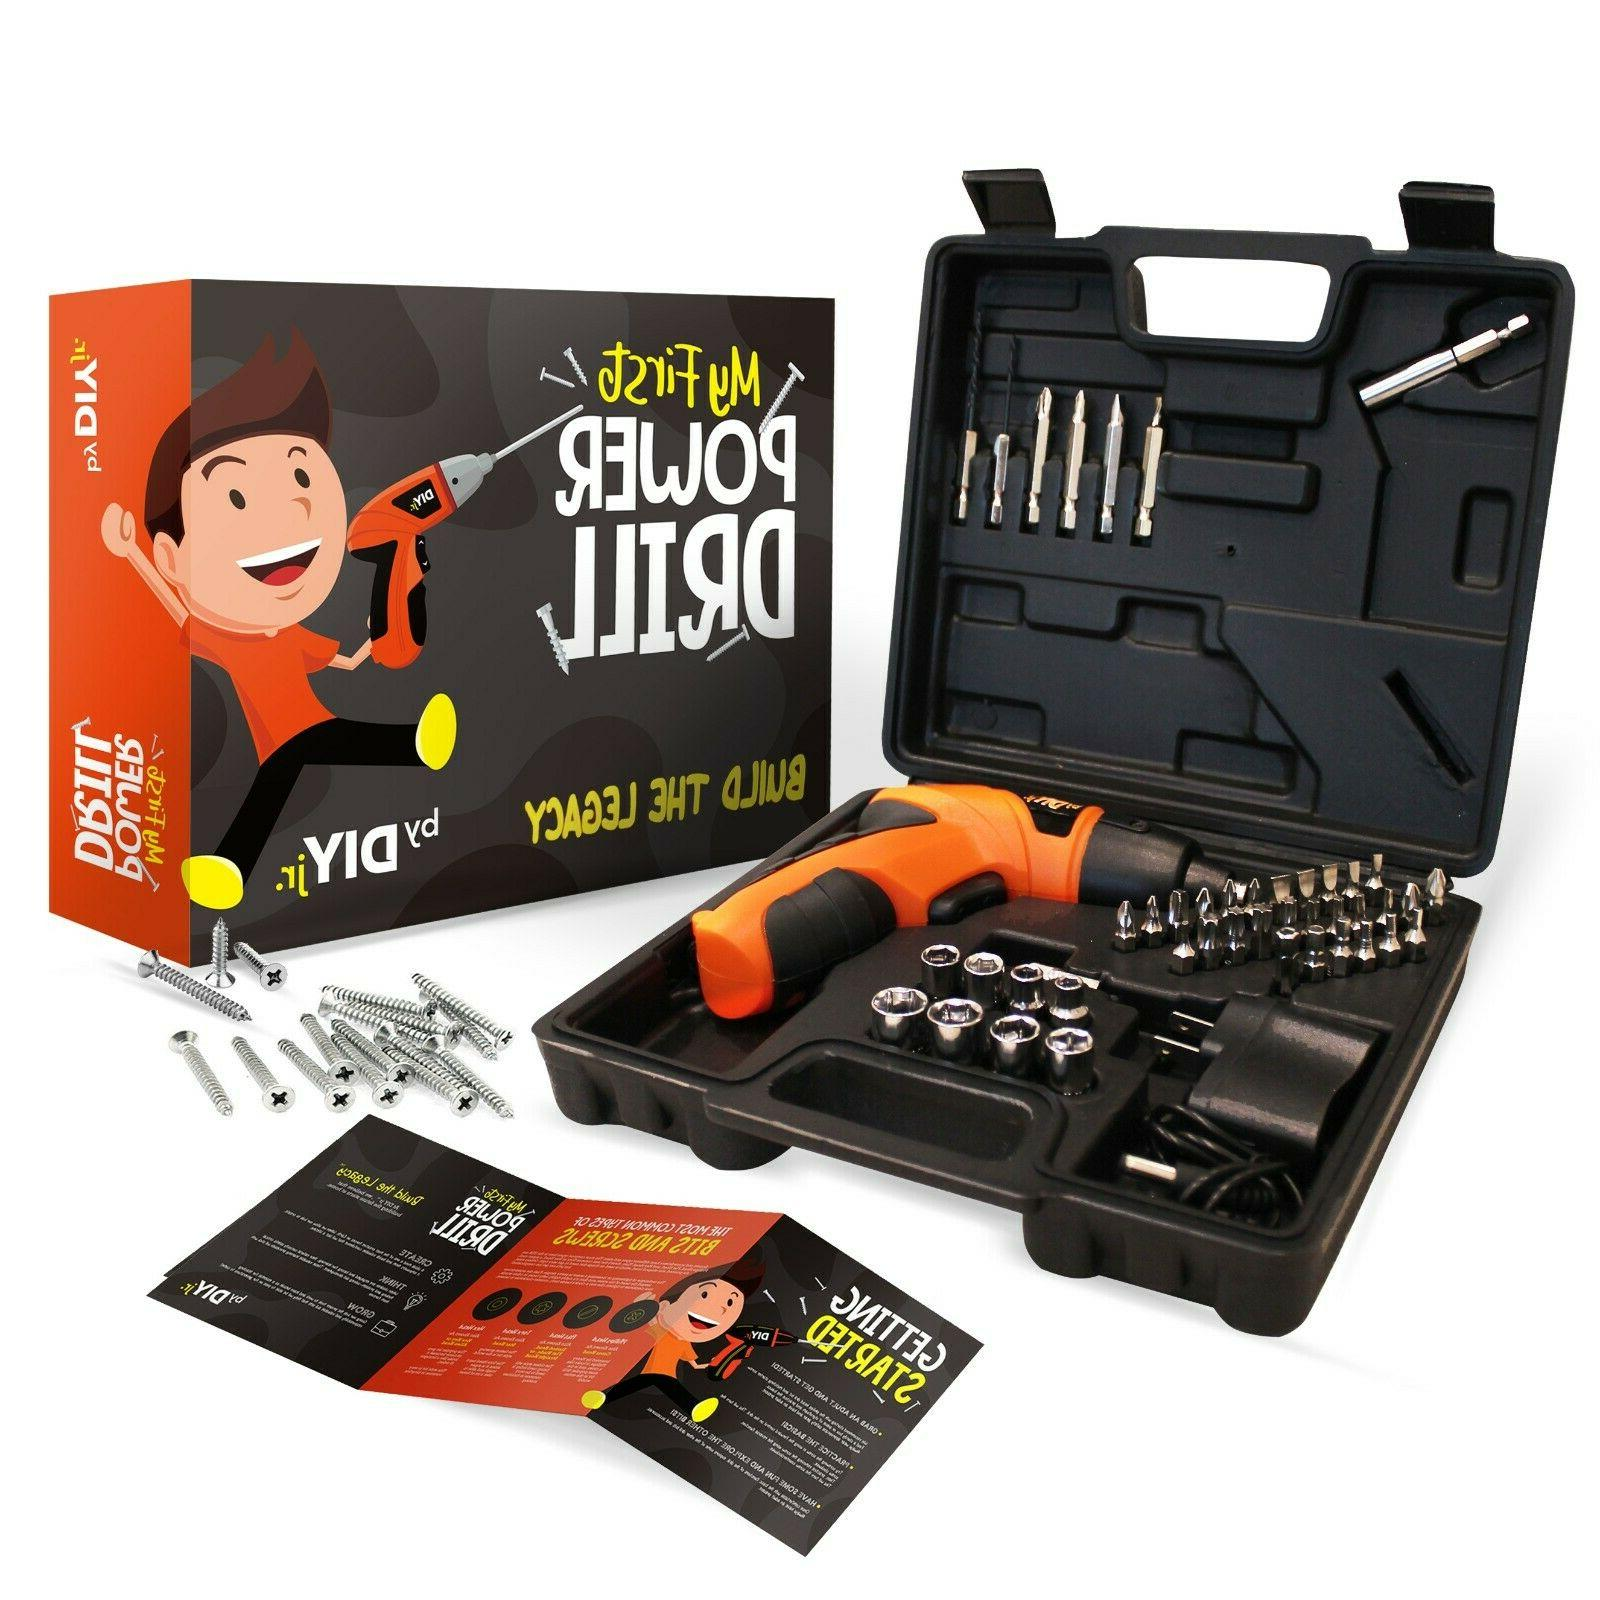 my first power drill set with case